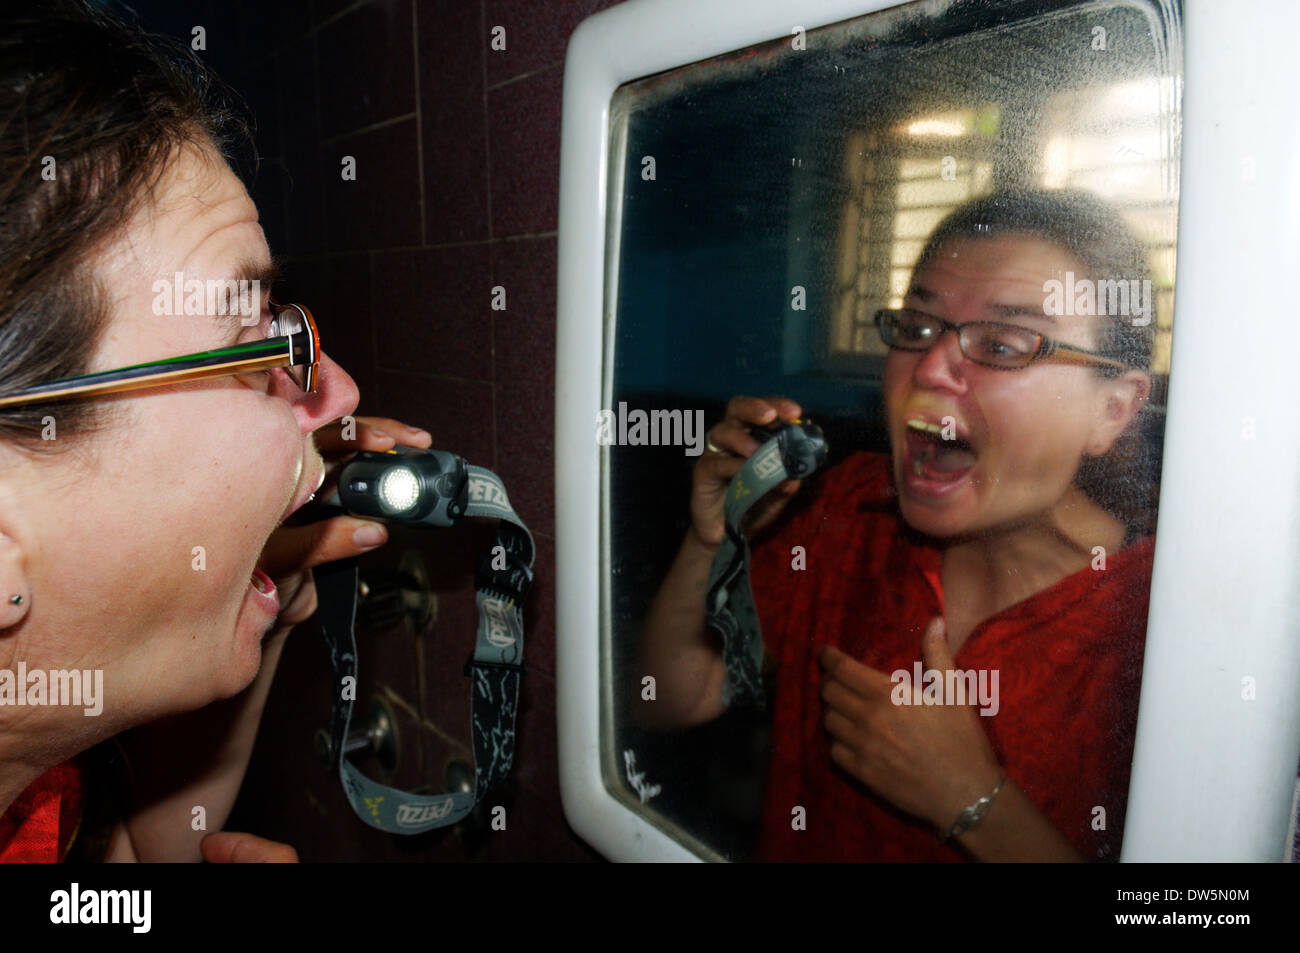 A woman checking her sore throat with a head torch in a mirror - Stock Image